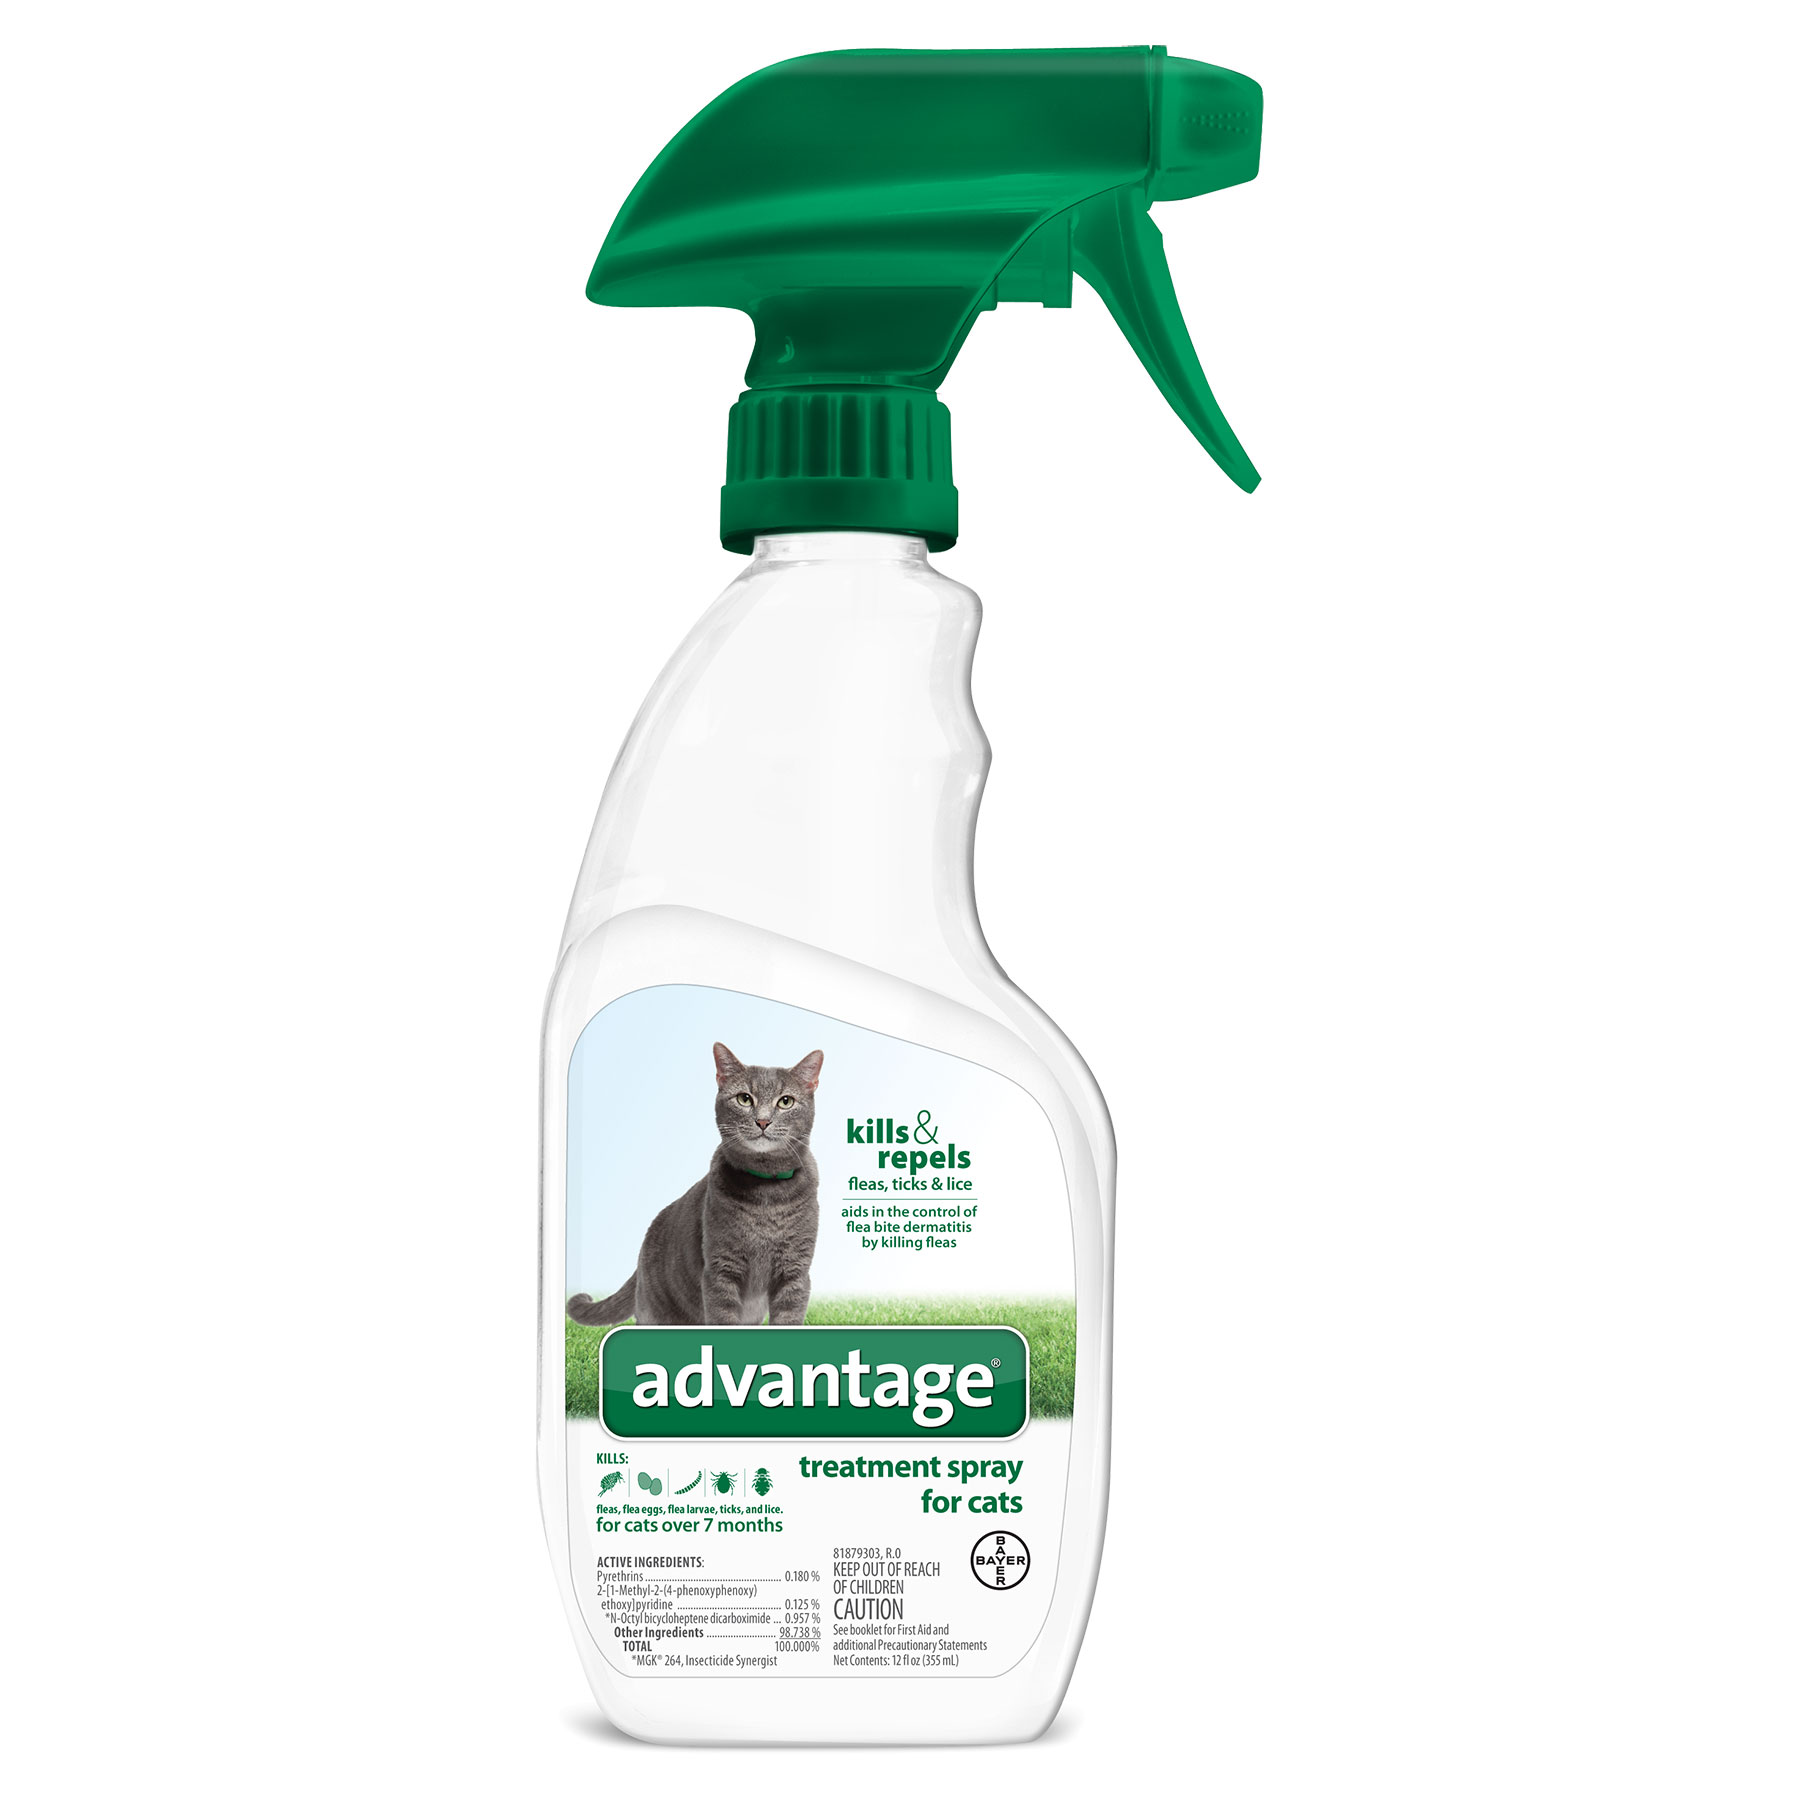 Advantage Treatment Spray for Cats - 12oz Thumbnail Image 2